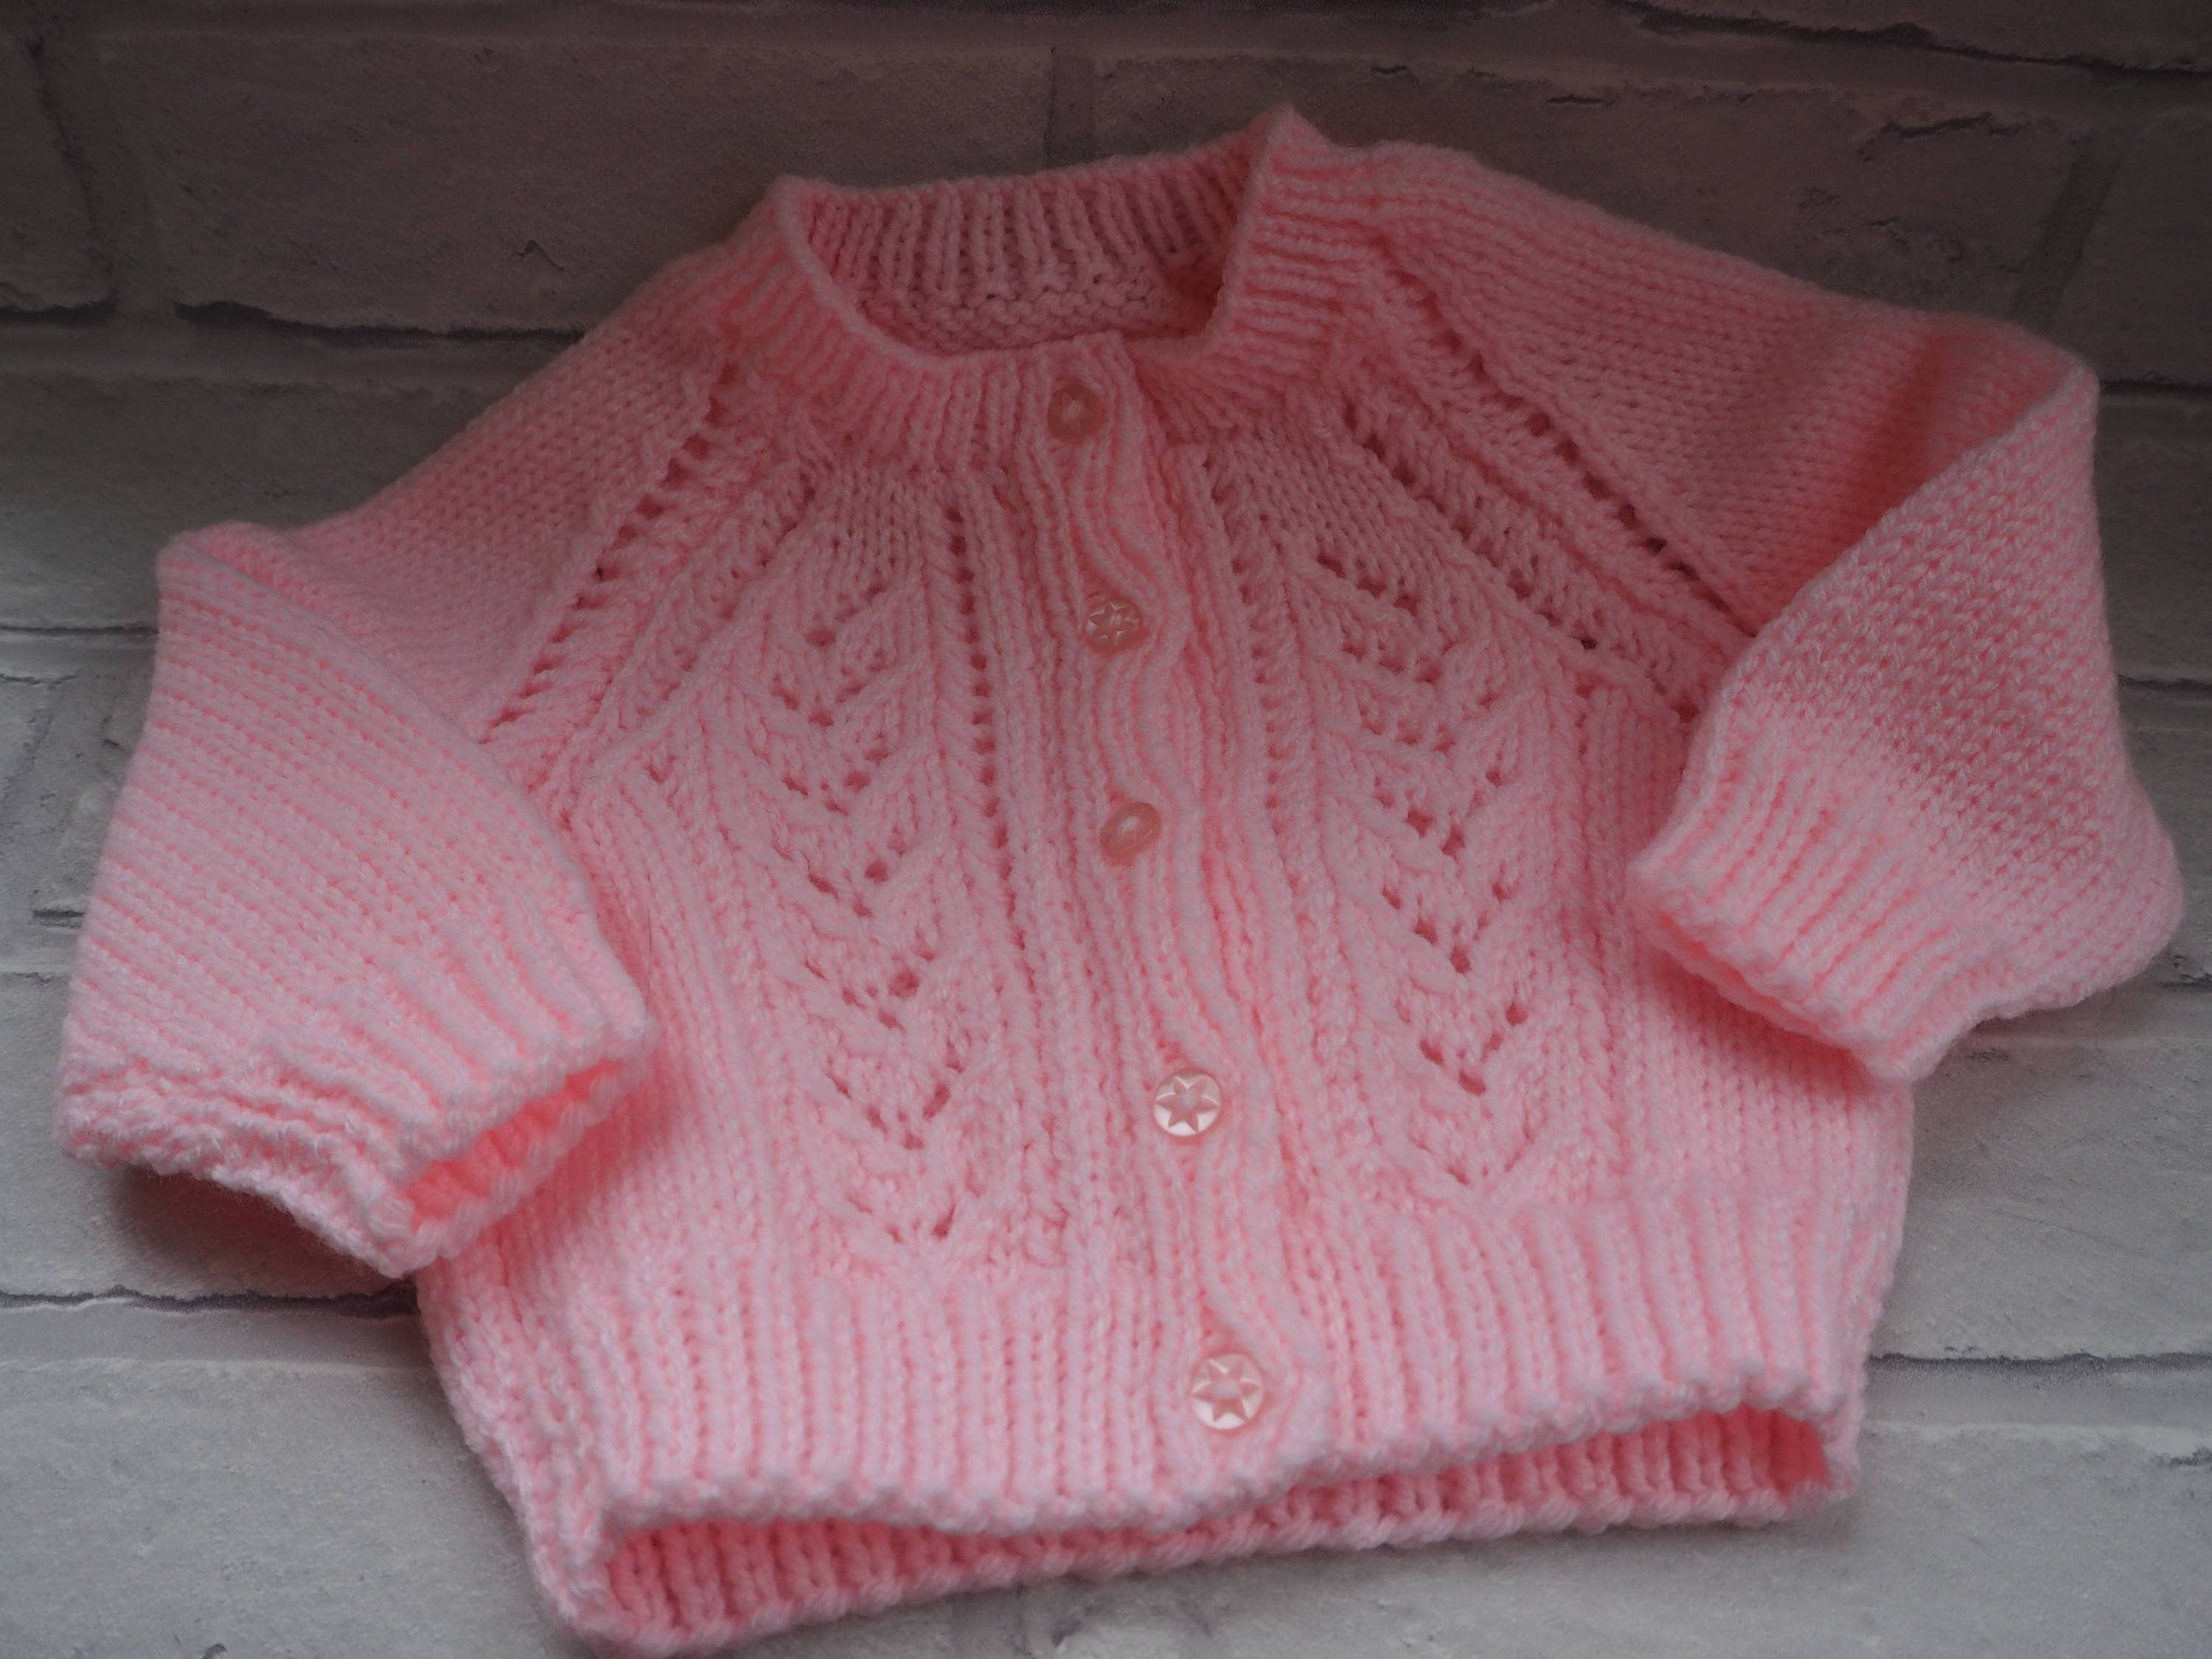 new baby gift, pink baby cardigan, knitted baby coat, photo prop, baby jacket, baby shower gift, girls baby cardigan, christening cardigan.